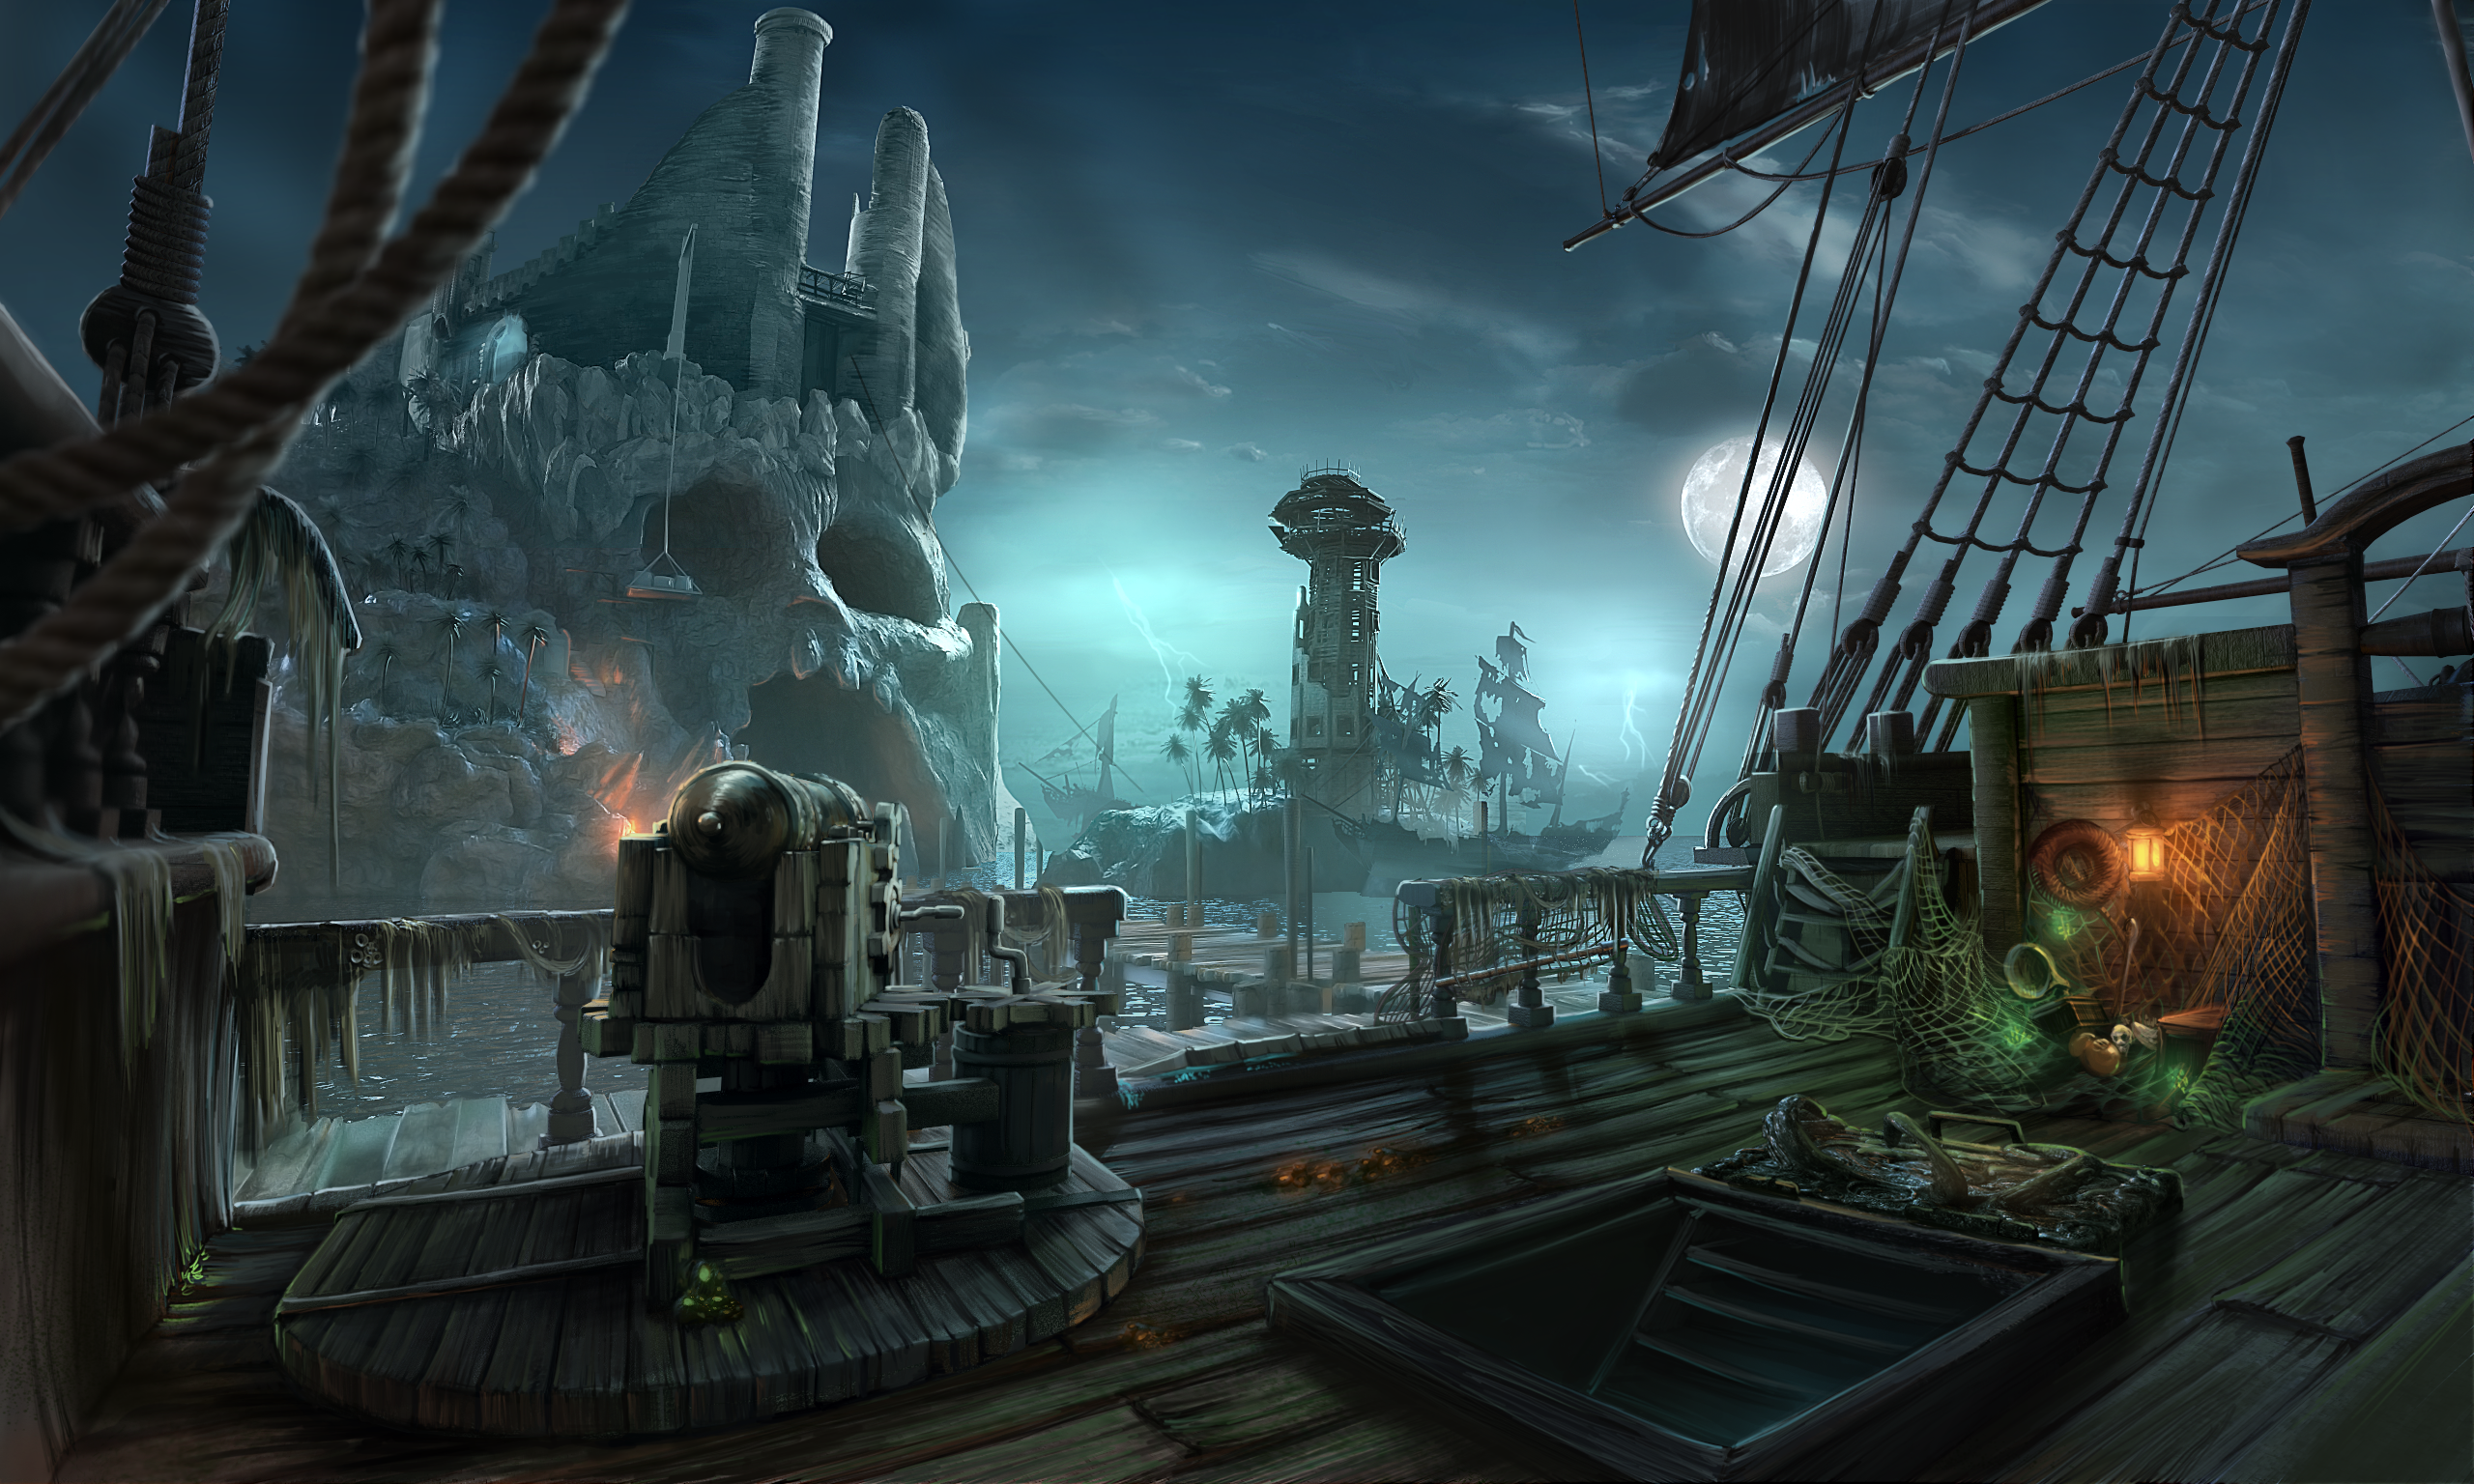 ghost pirate ship deck - photo #32